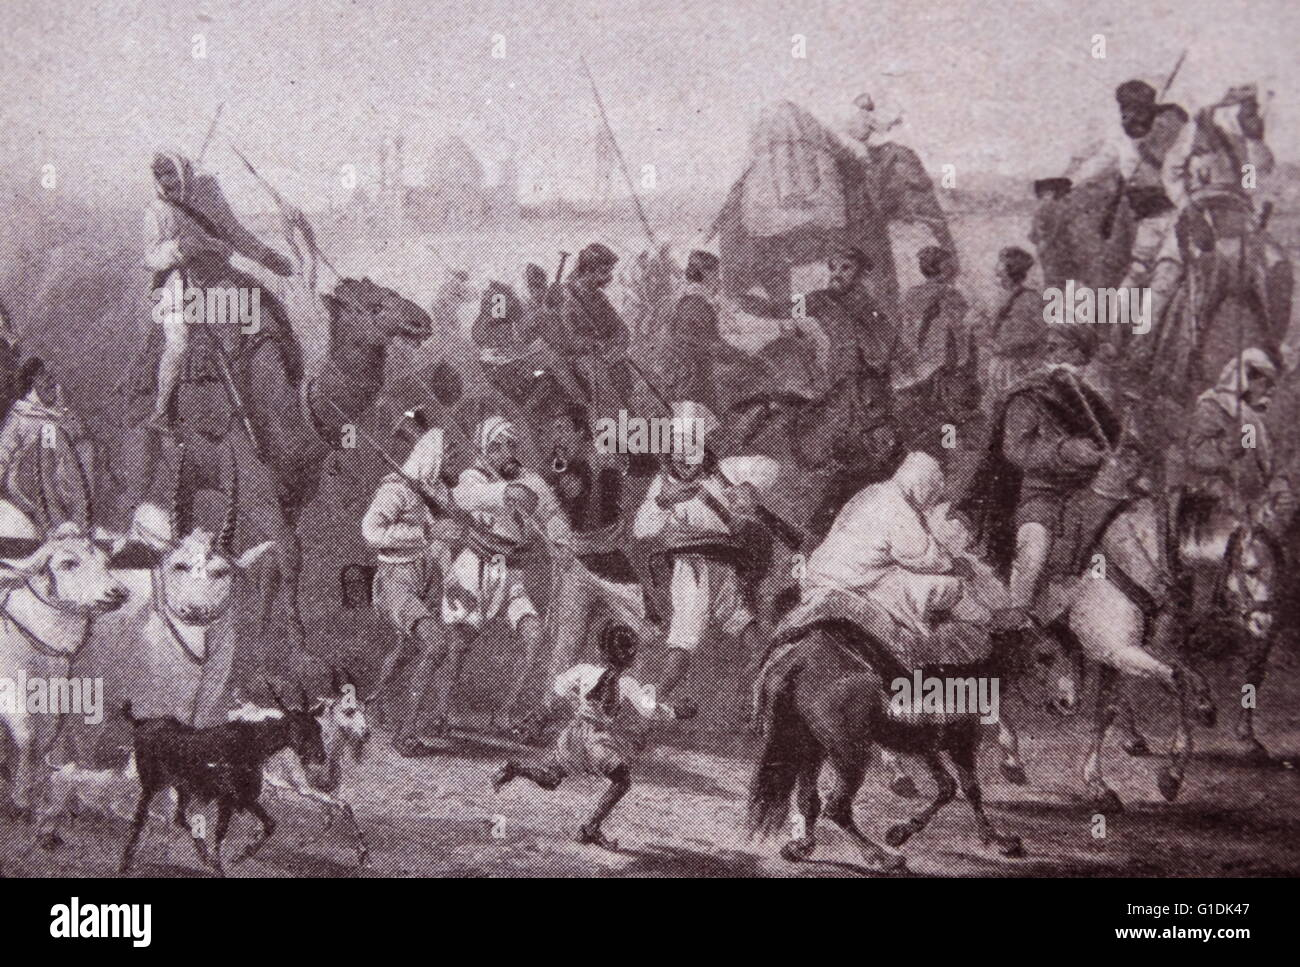 Scene depicting the troops of the Native Allies on the March during the Mutiny - Stock Image